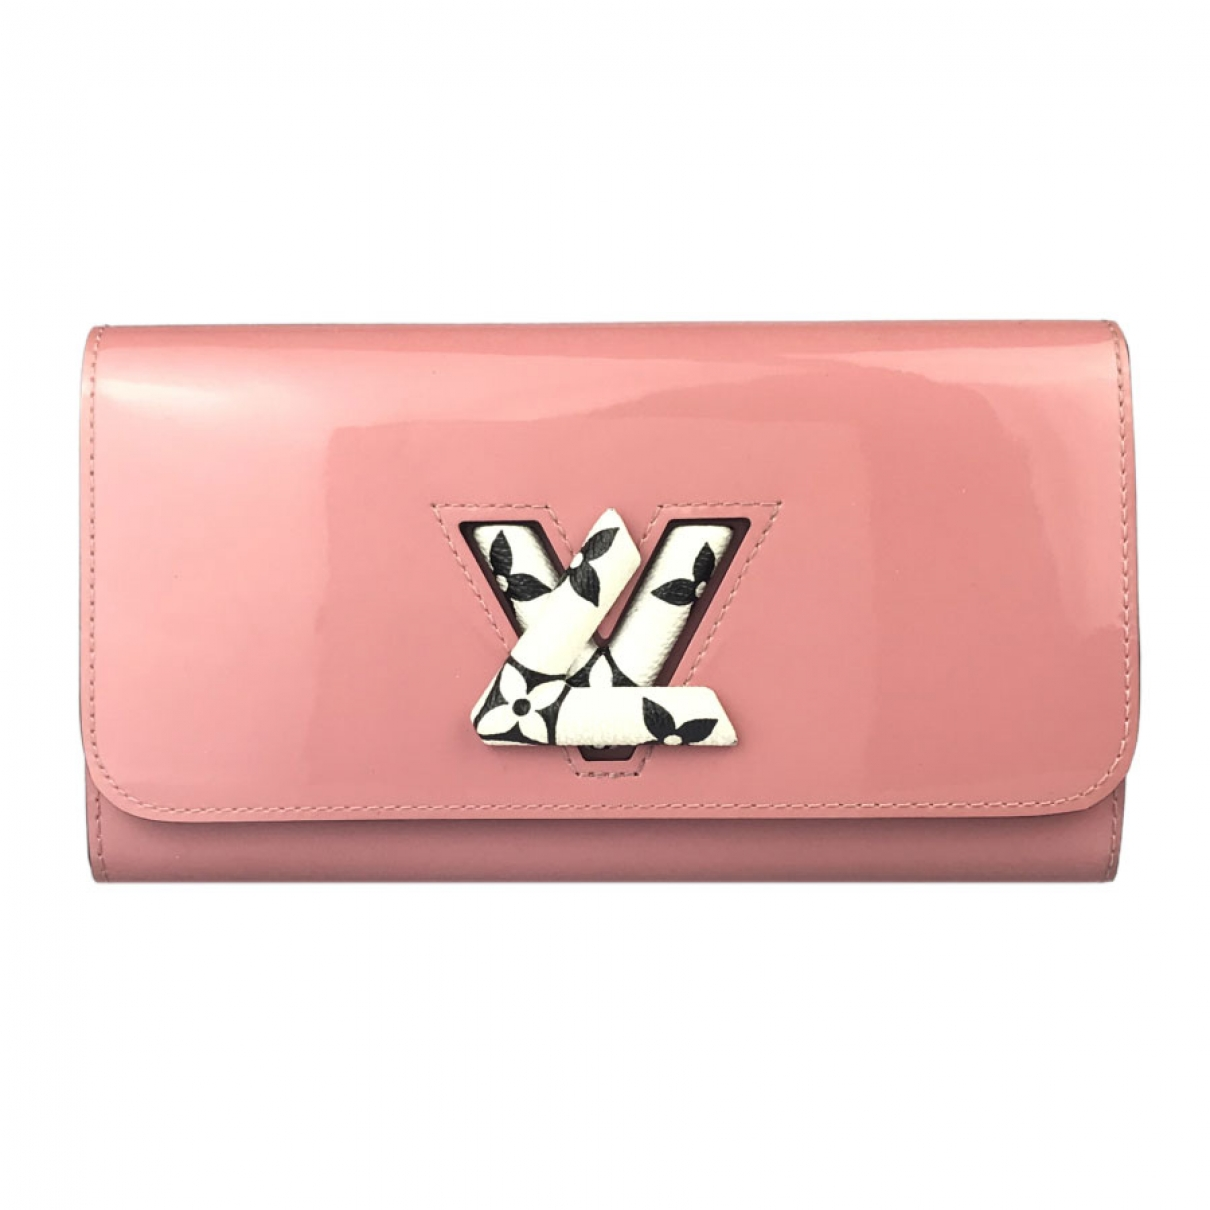 Louis Vuitton Twist Portemonnaie in  Rosa Lackleder